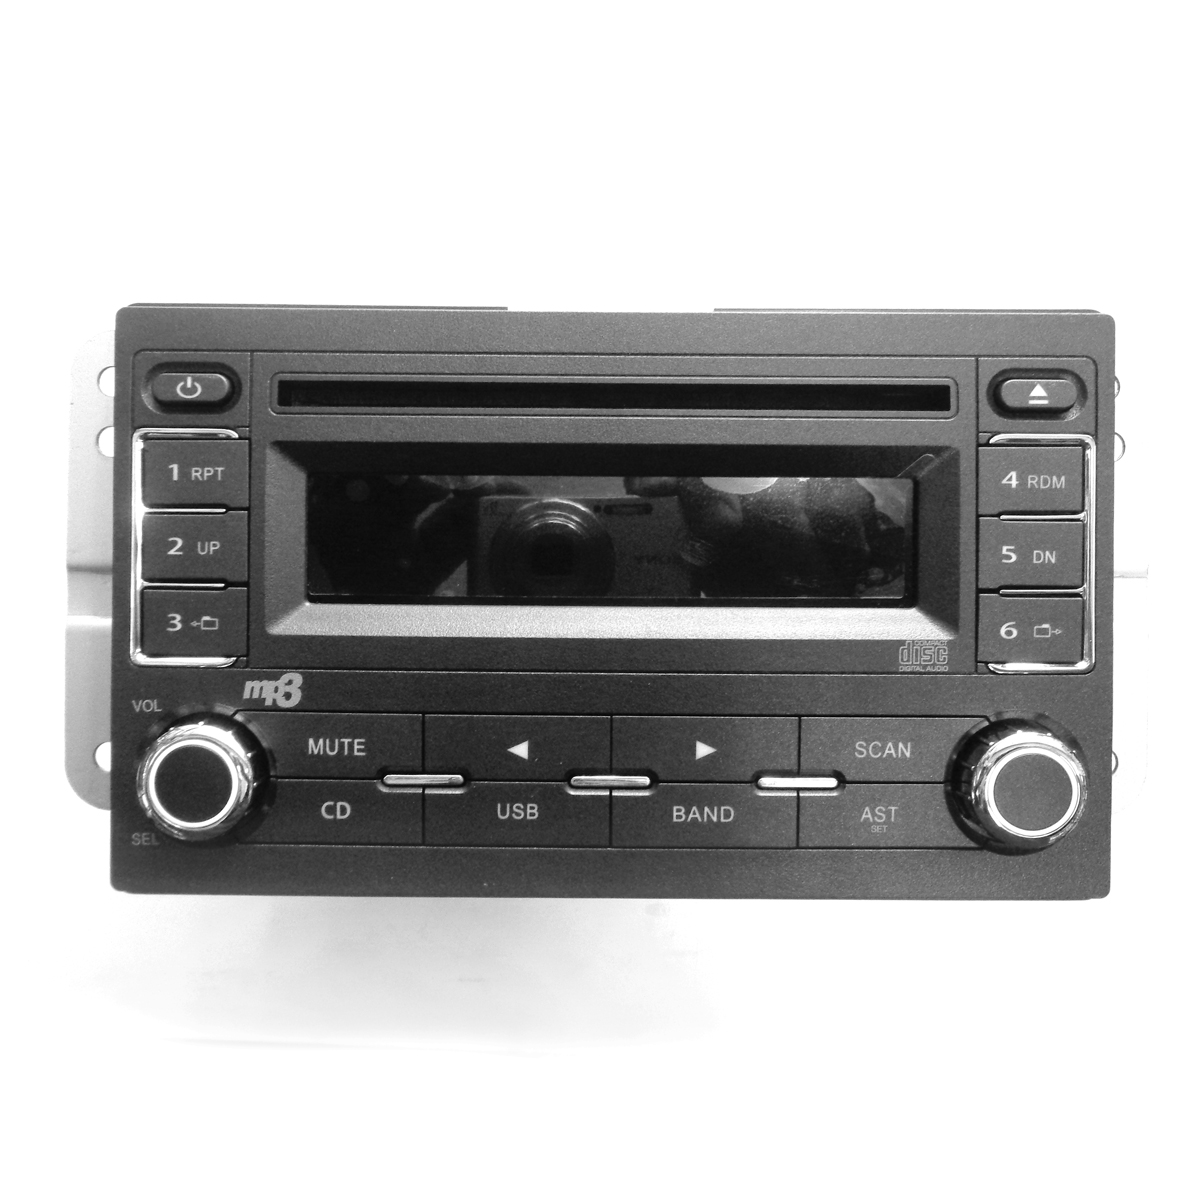 Auto Rádio Com Fm/am / Cd Player Mp3 - Painéis, Velocímetros